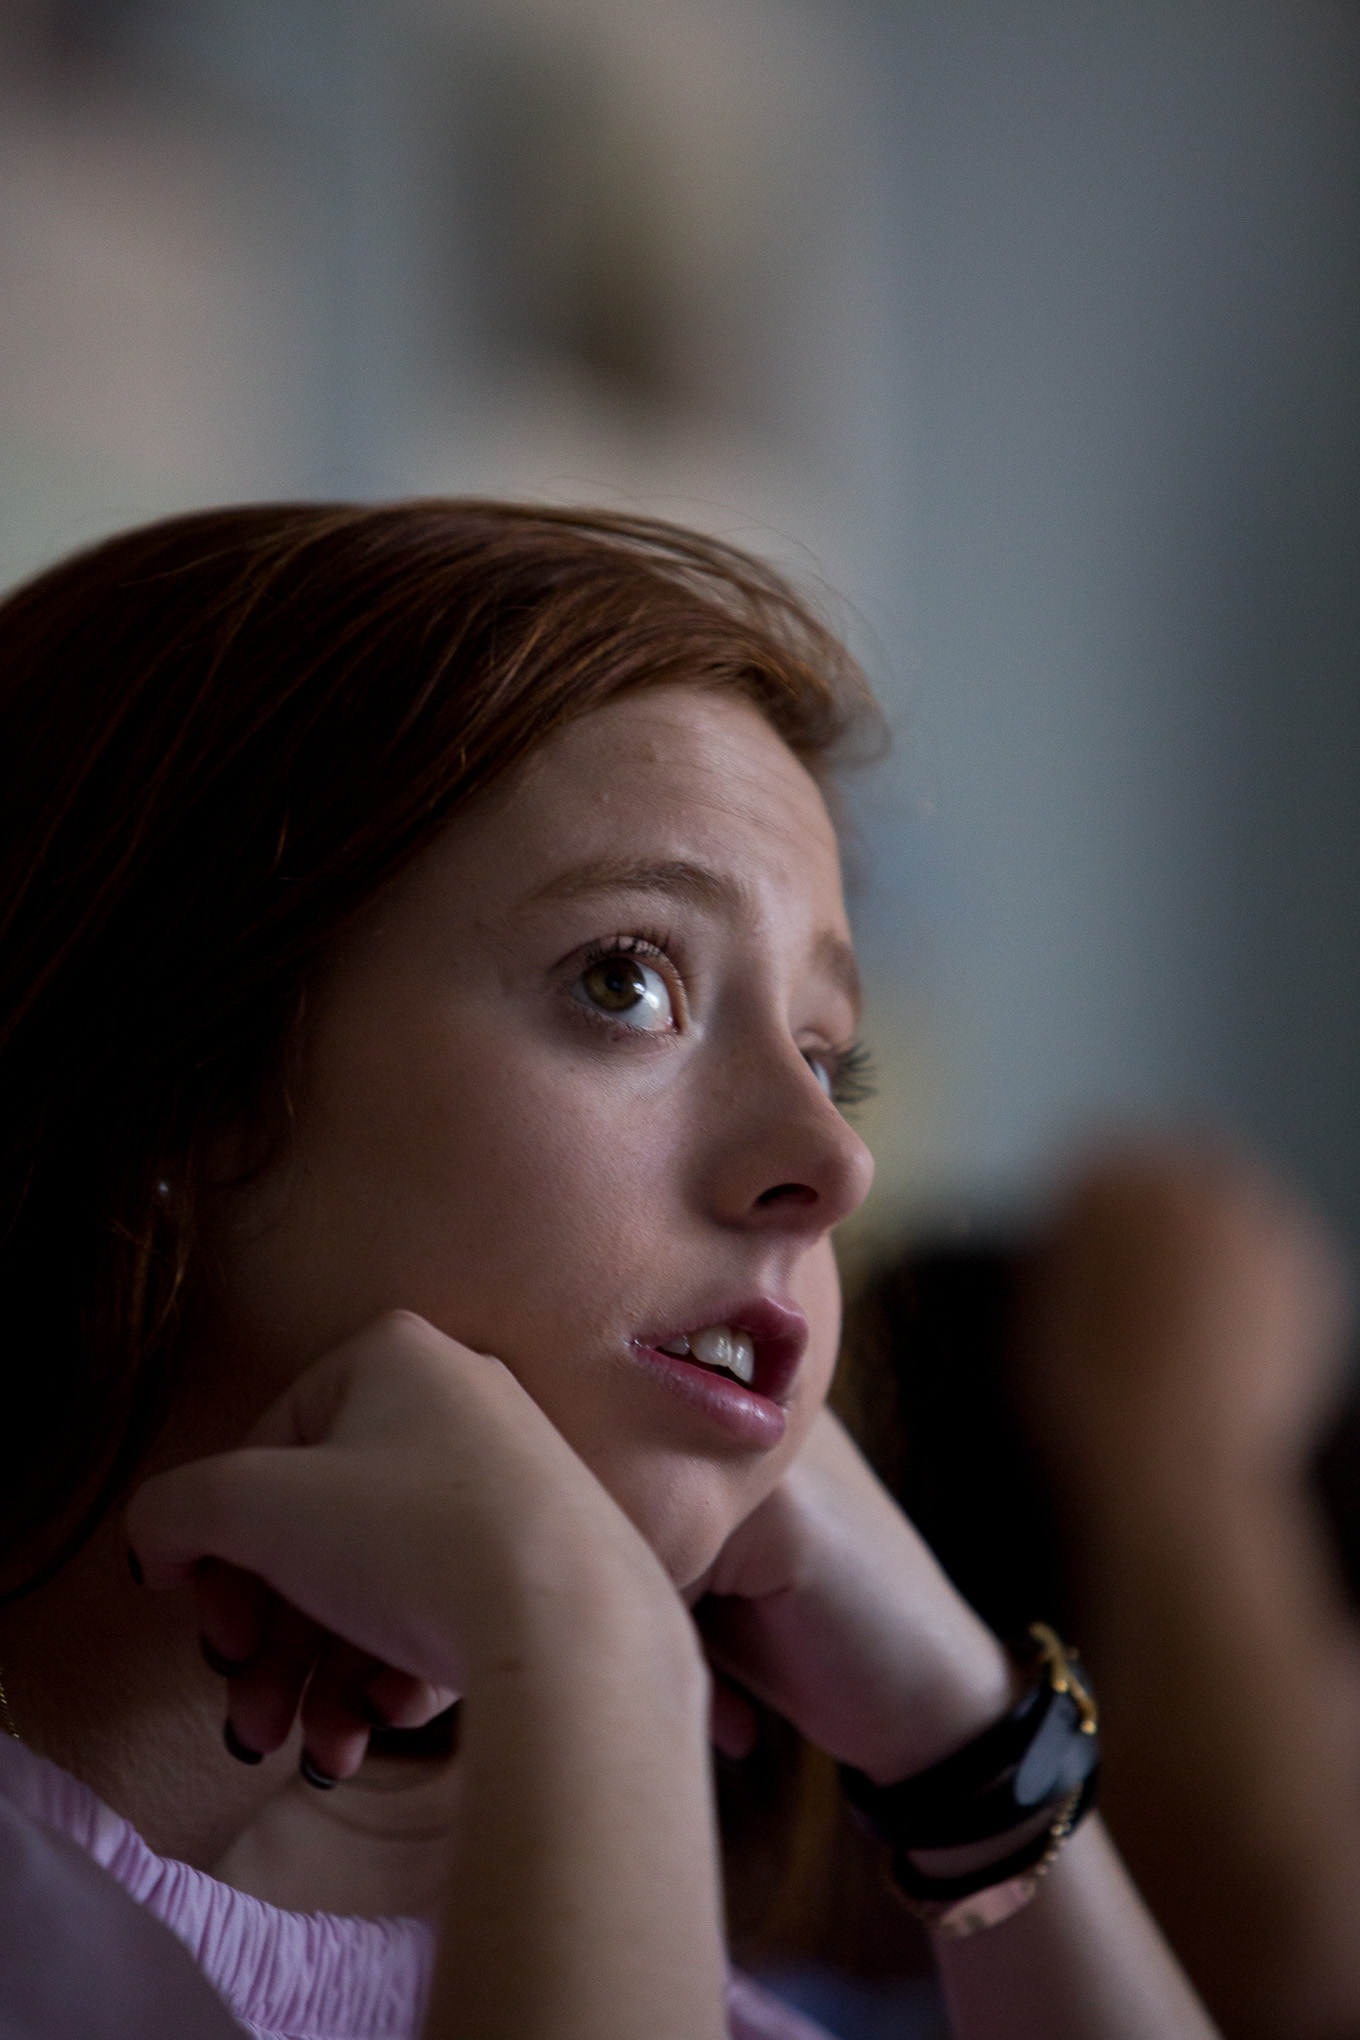 Issy West, 17 reacts during a video sharing a personal experience of the attacks on 9/11.